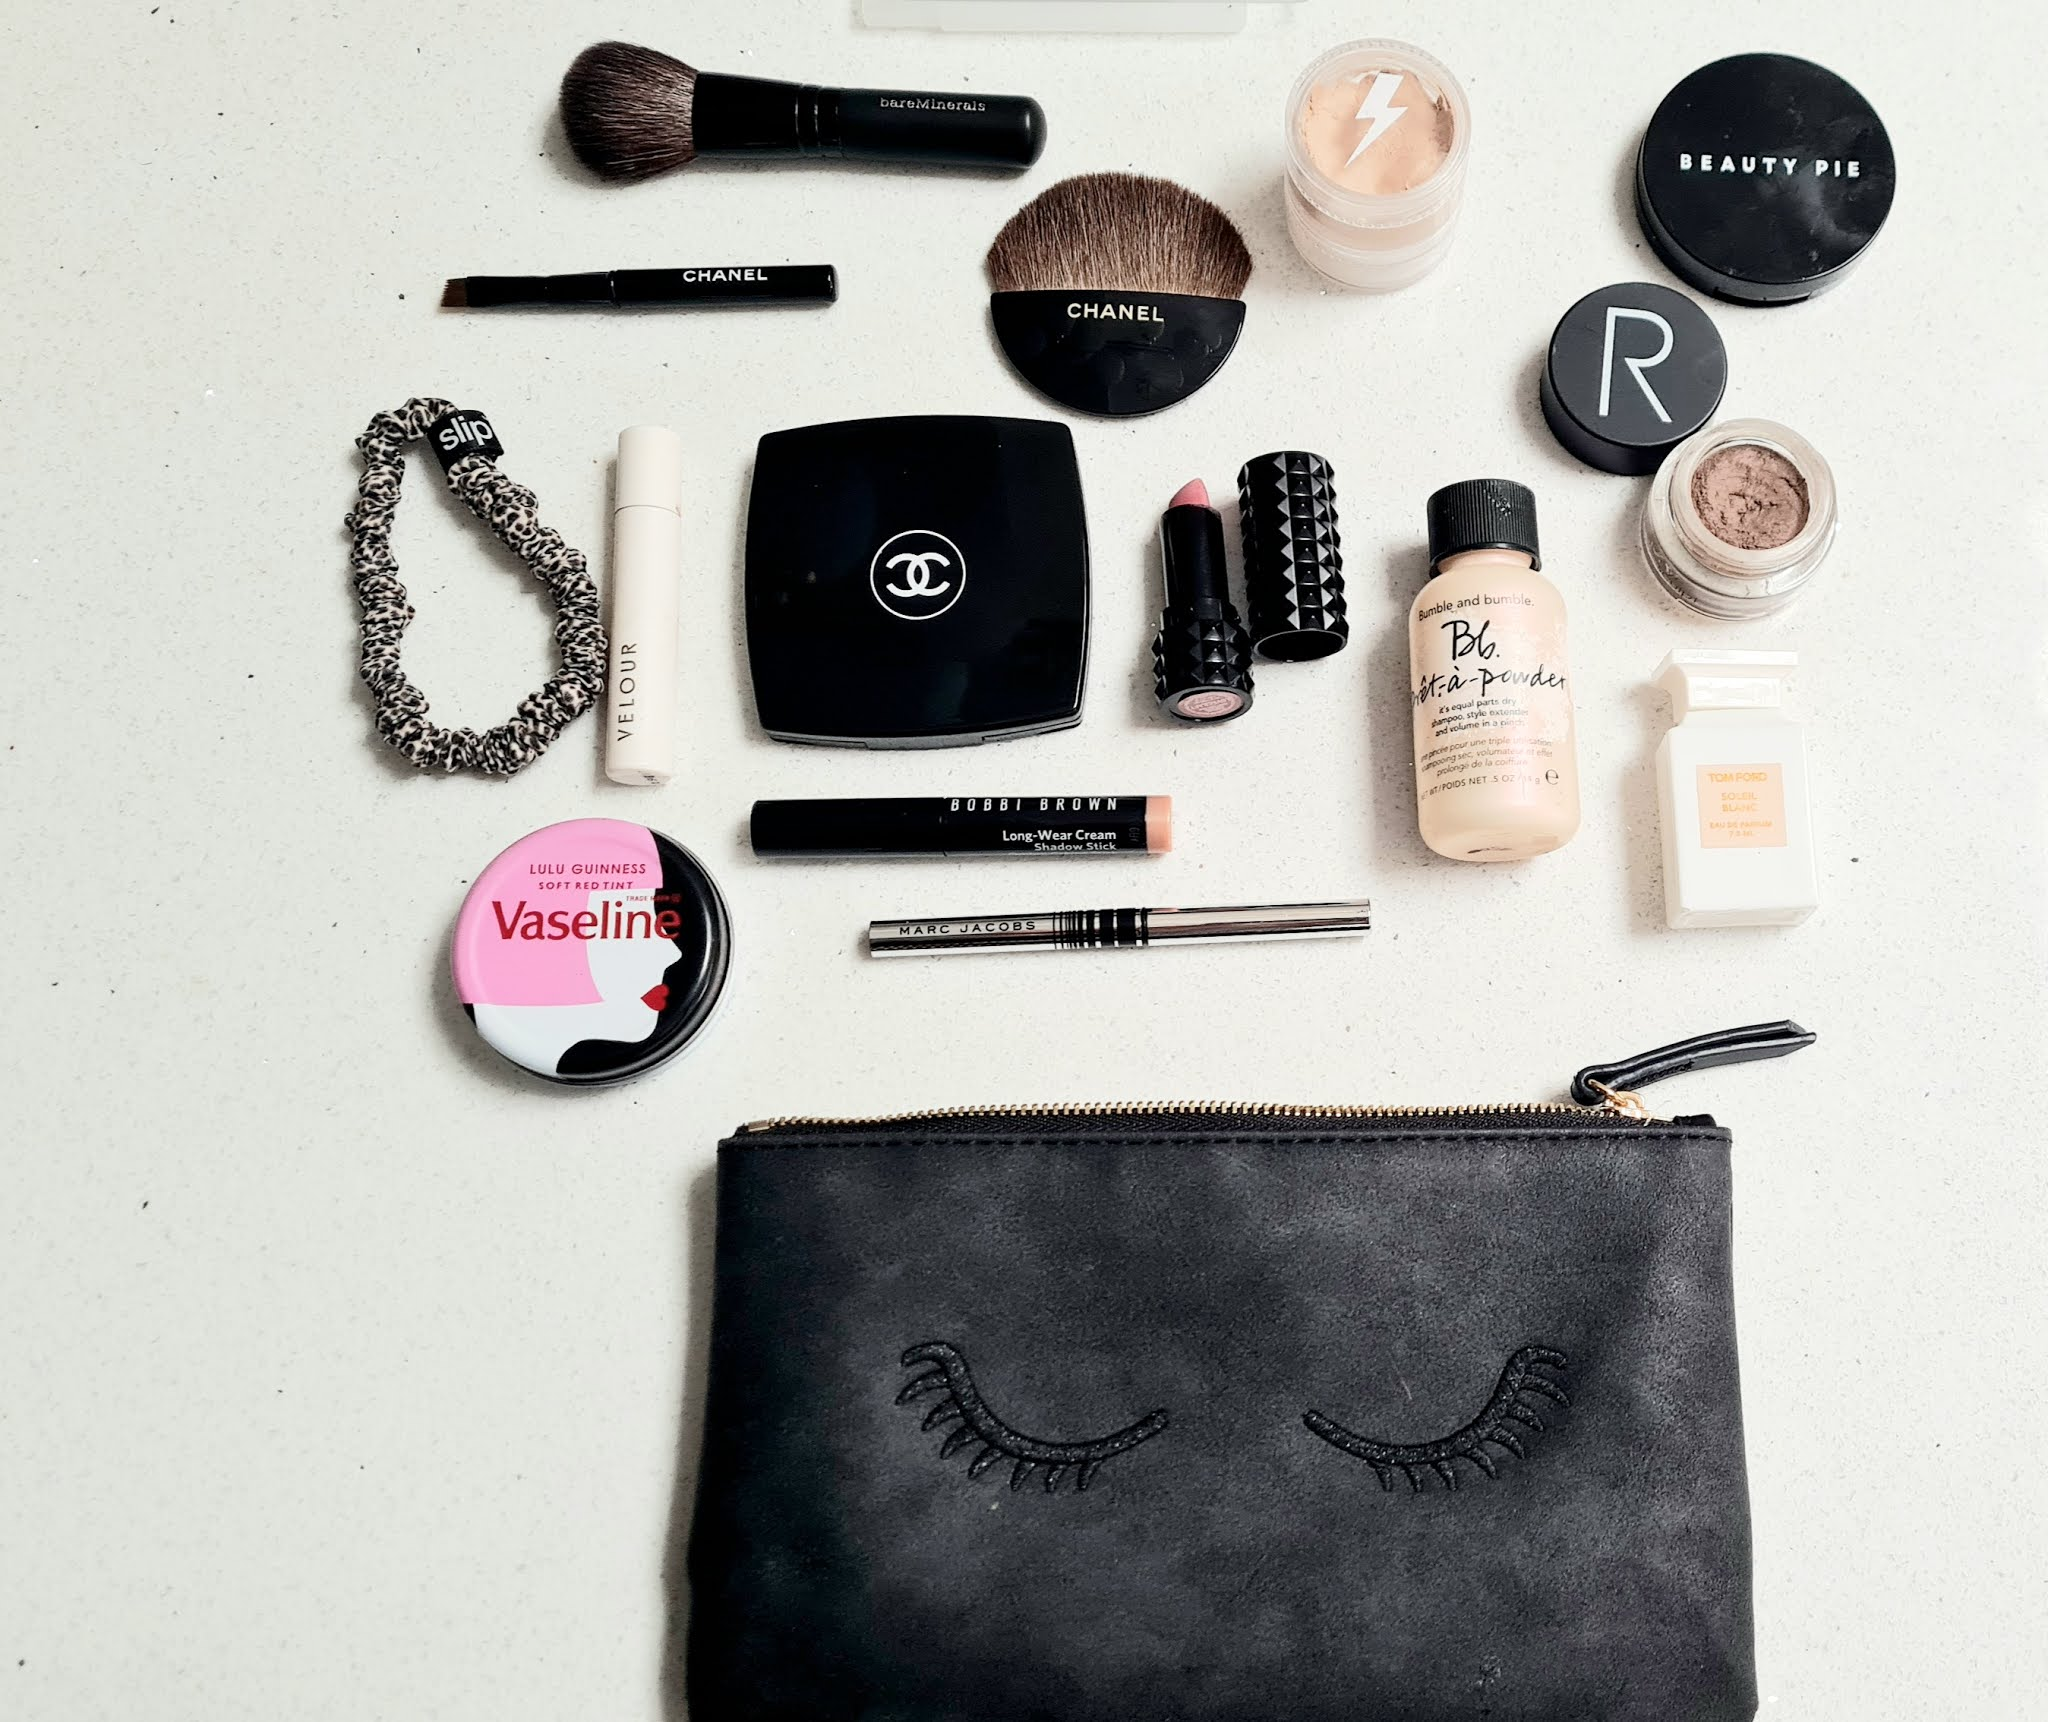 Travel size beauty mini makeup bag essentials